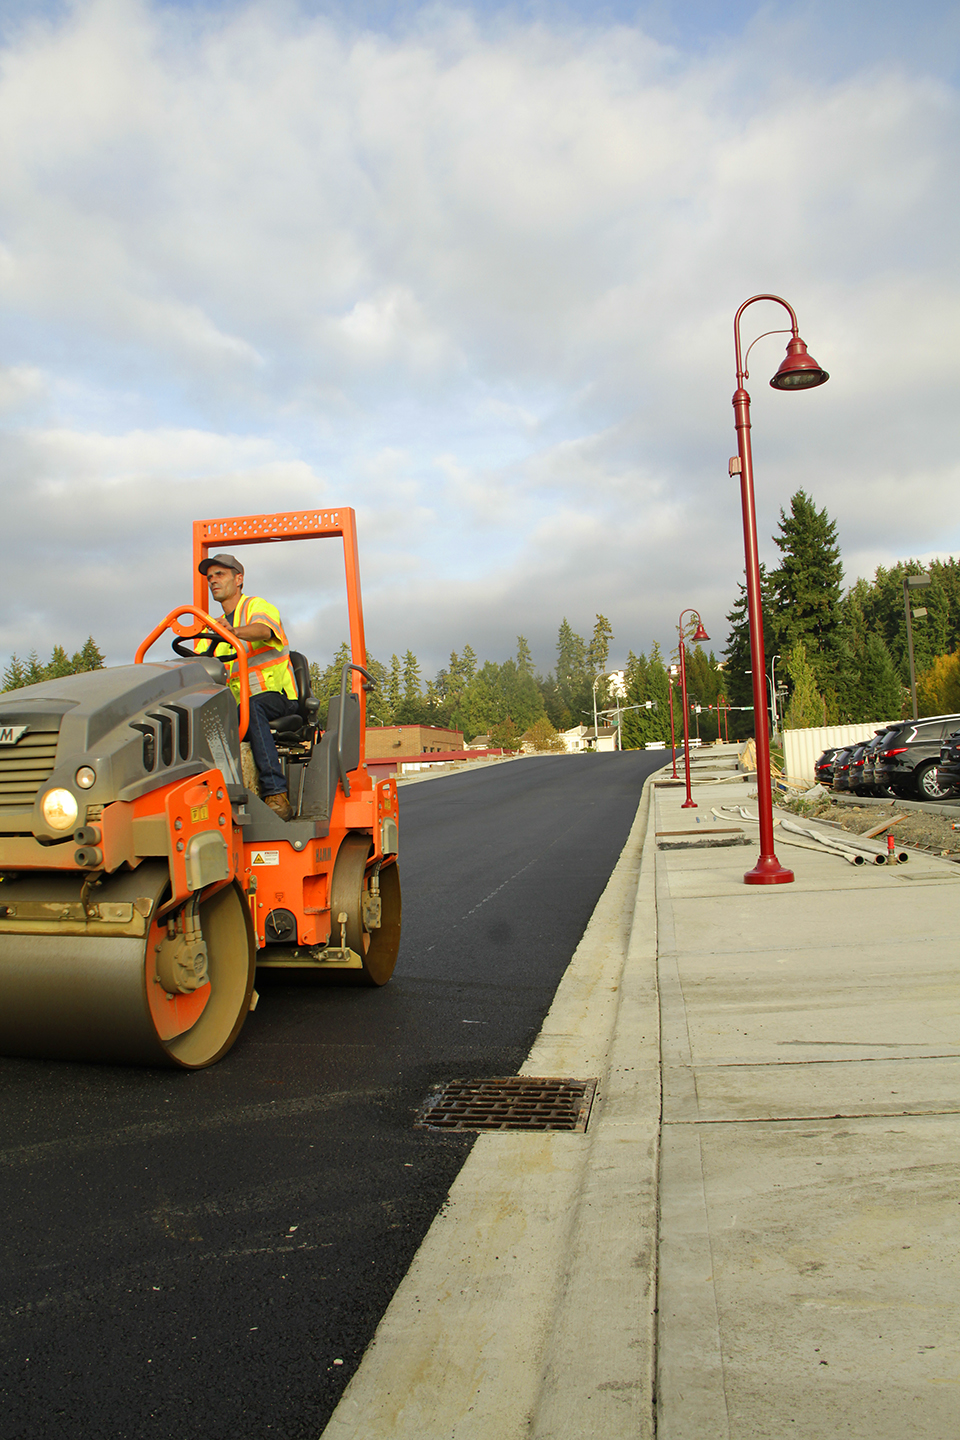 Darin Baker, an operator with Lakeside Industries, compacts on Wednesday afternoon the final layer of asphalt on Northeast 120th Street. The subcontractor paved in two days the 900-foot road extension, which connects 124th Avenue Northeast to Slater Avenue Northeast. The focus of Kirkland's 120th Street contractor now returns to finishing the sidewalk on the north side of the road, as well as installing handrails, traffic signals and signs. The contractor is on schedule to stripe the road's two through-lanes, center turn lane and bike lanes by December.